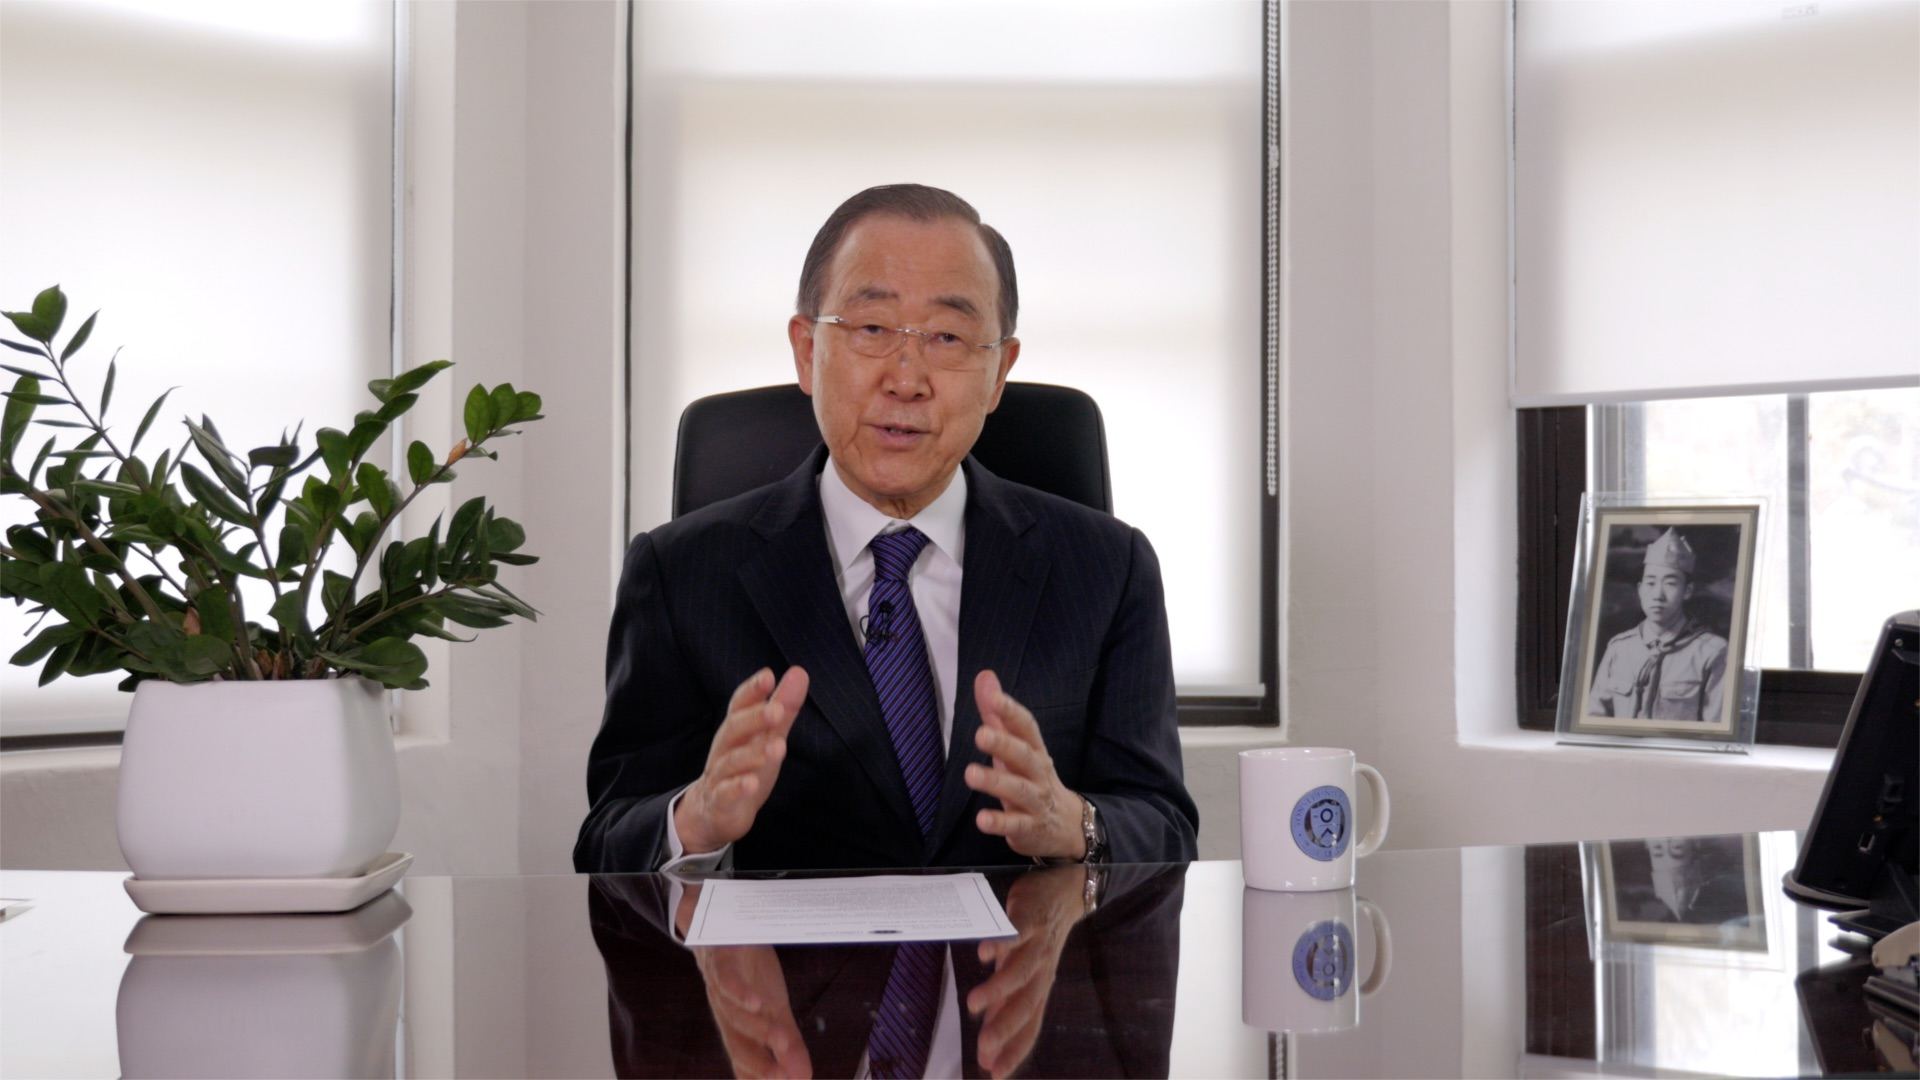 Ban Ki-moon addresses Millennium Fellows